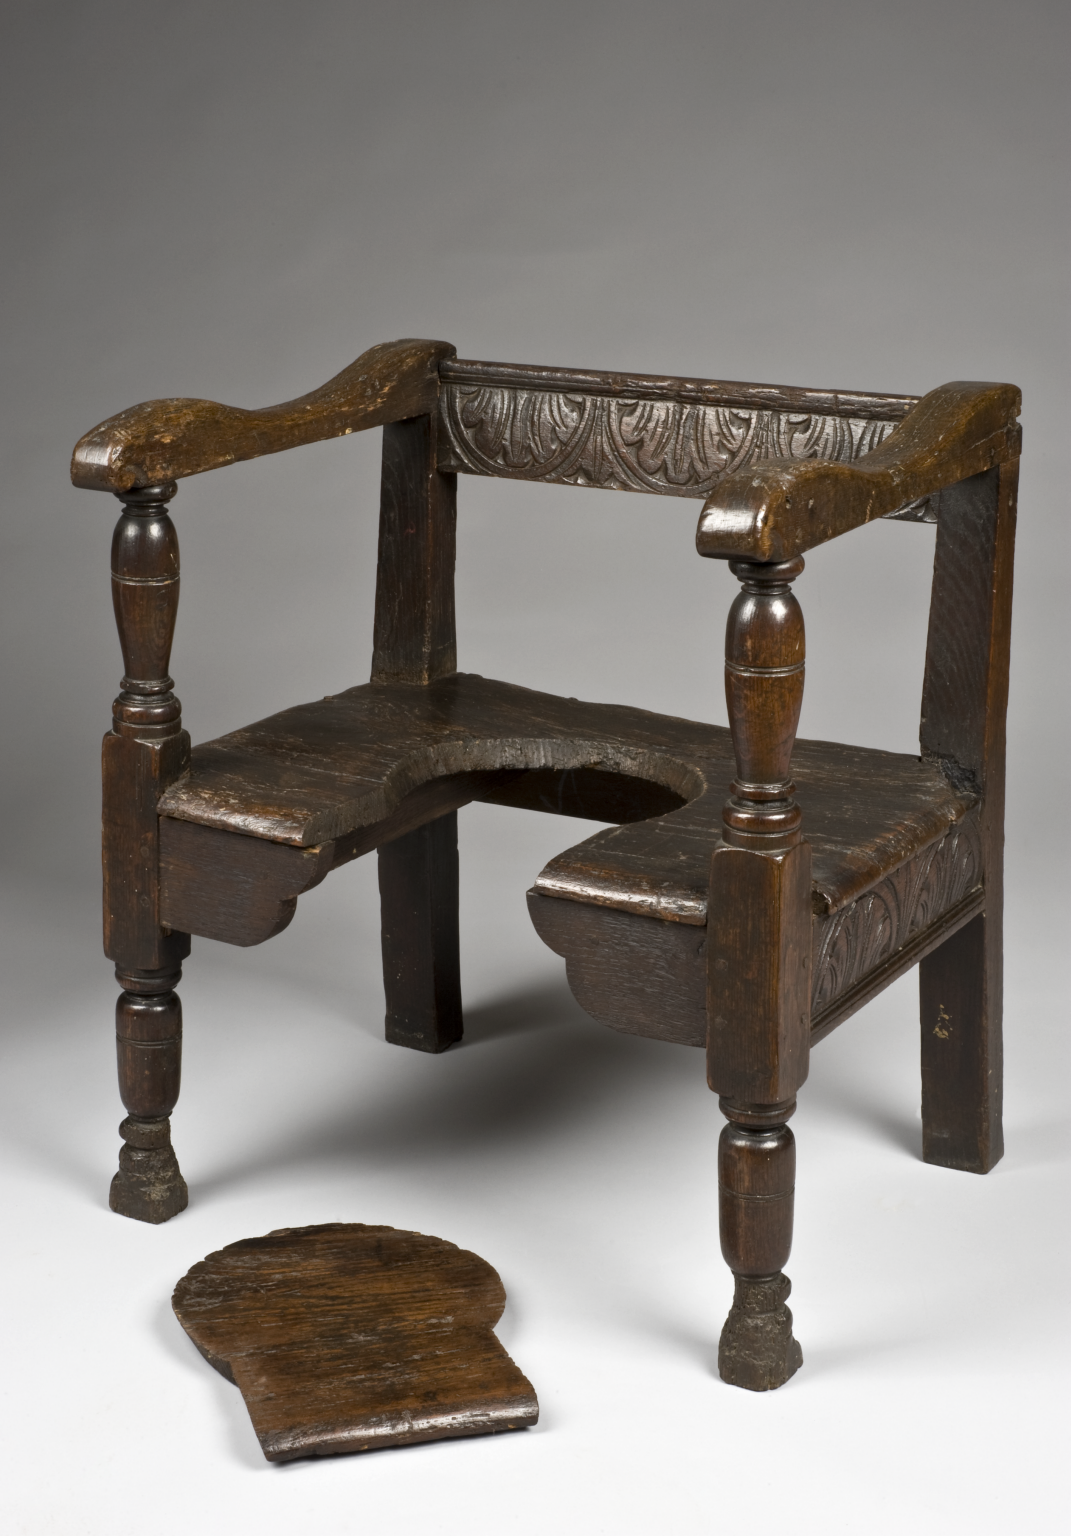 Parturition (birthing) chair, England, 16011700 History